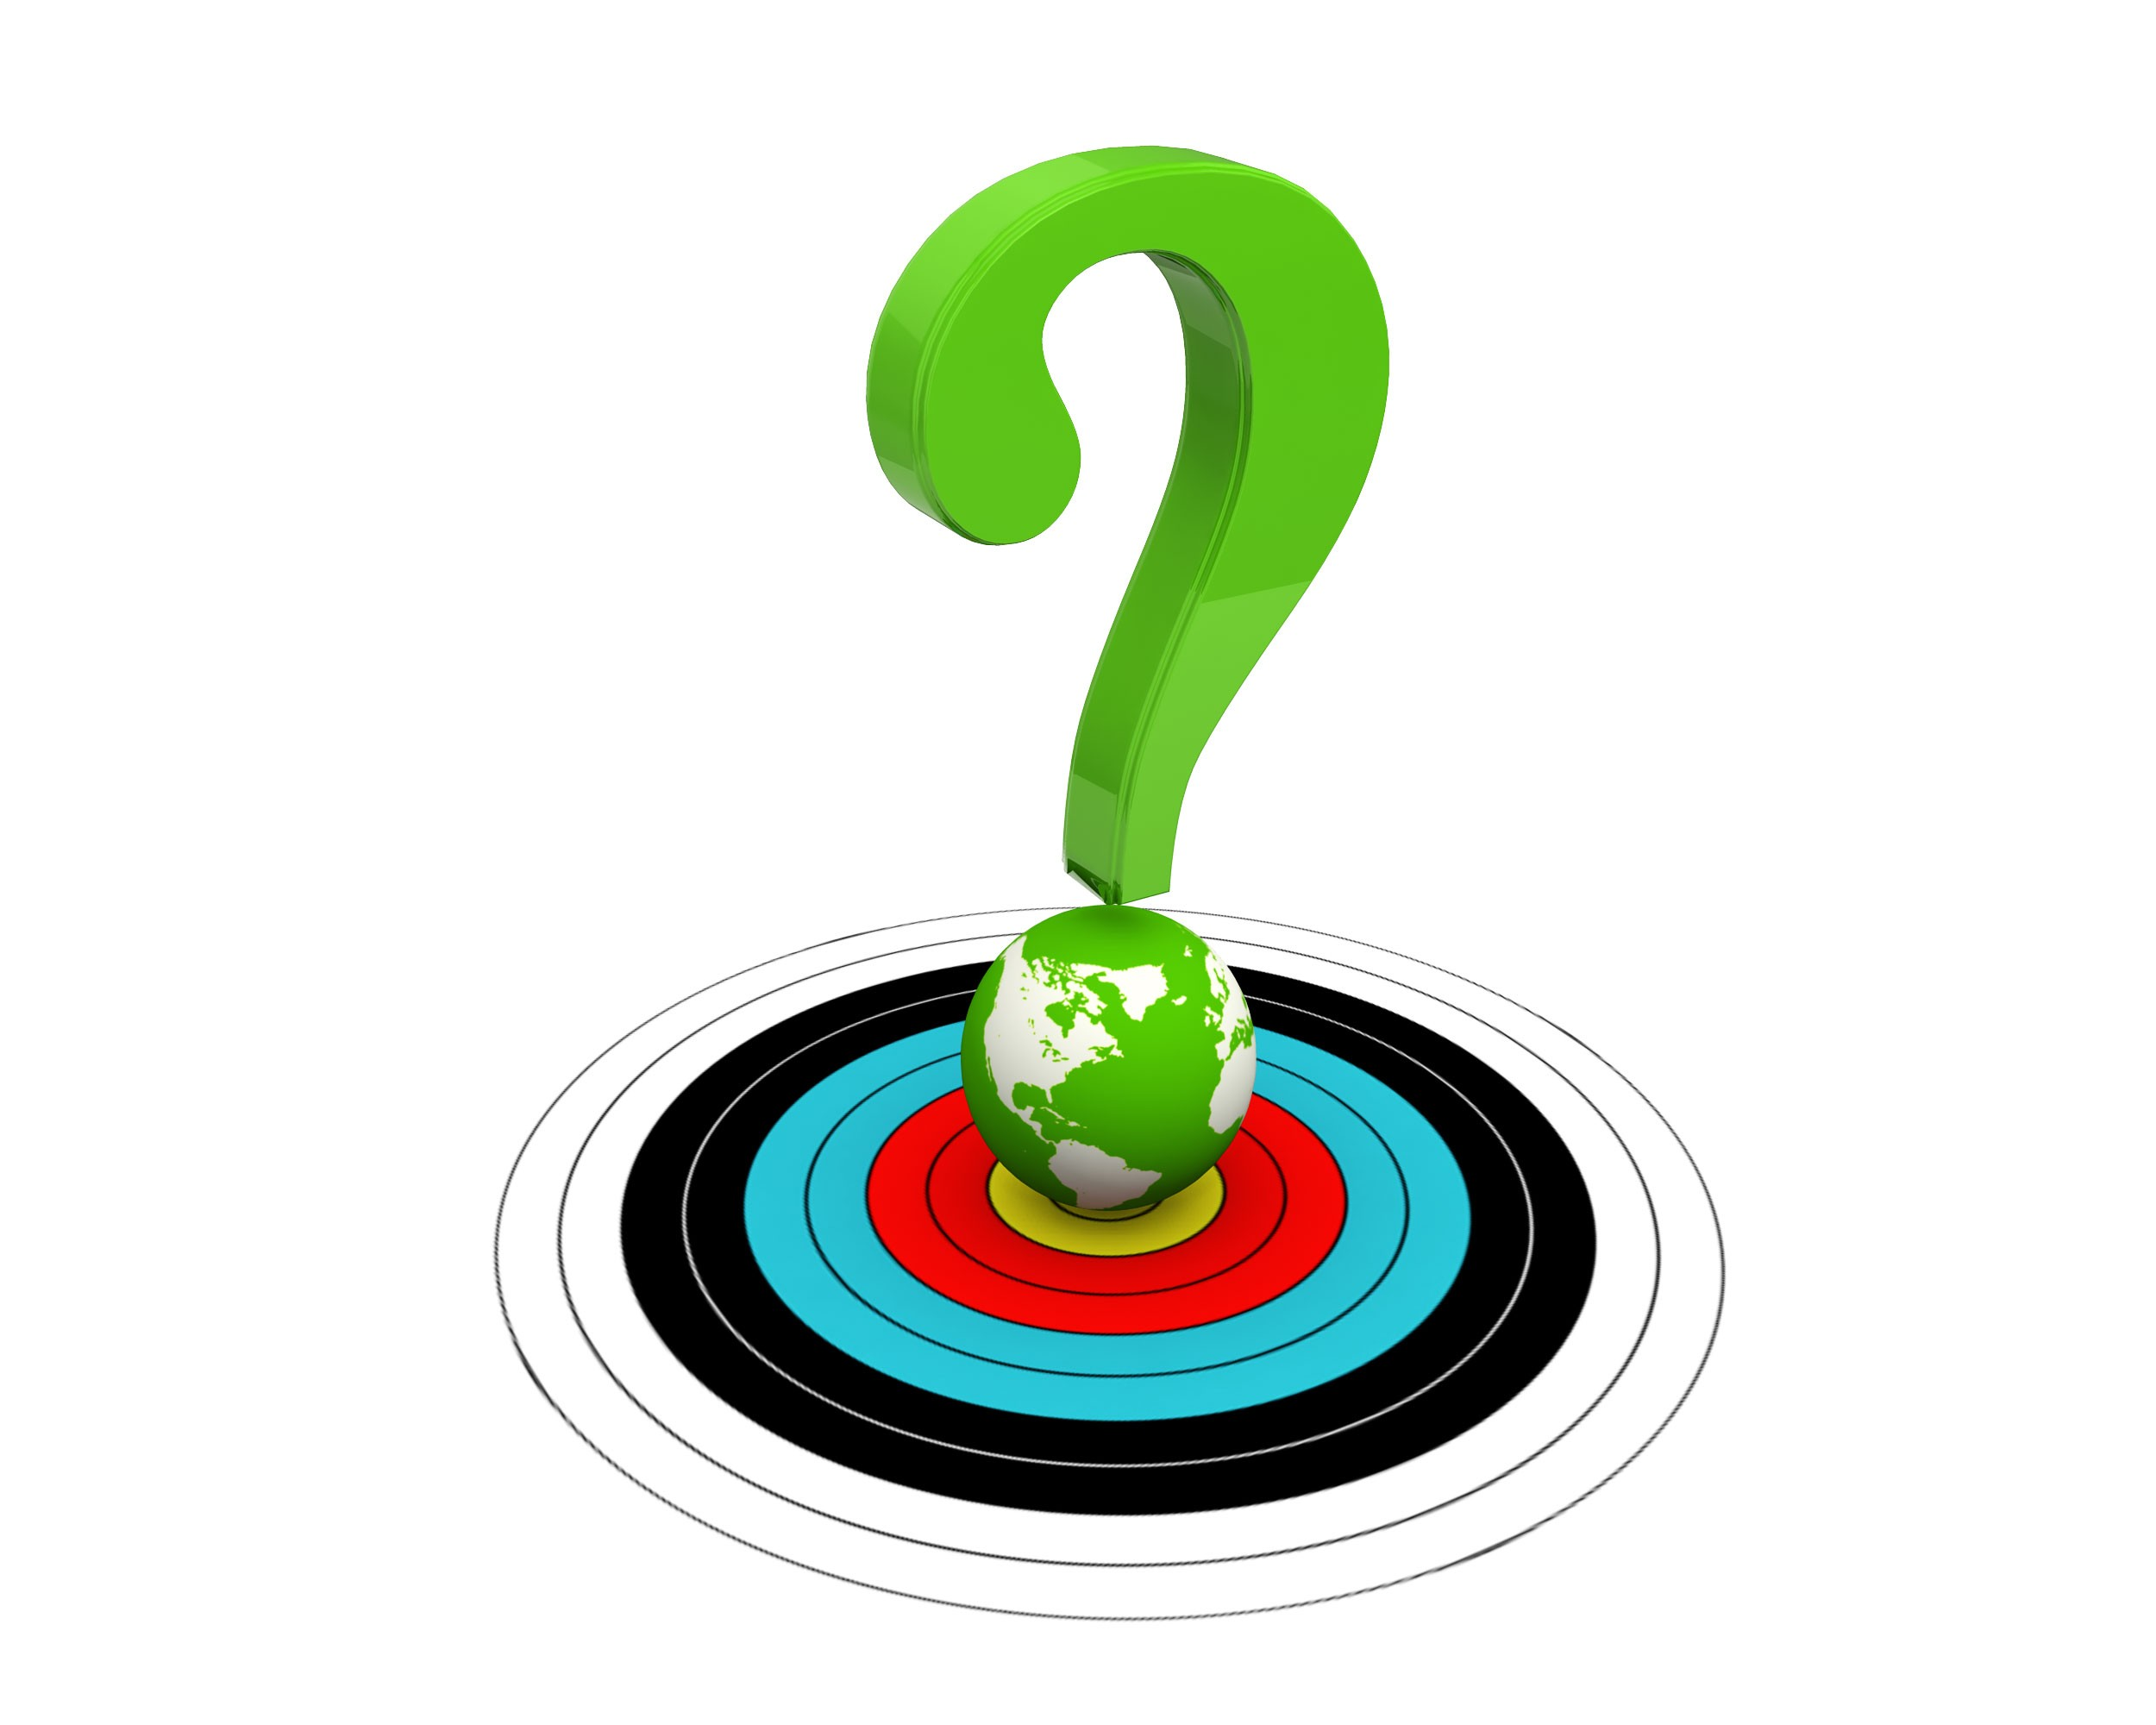 3d_graphic_of_question_mark_on_globe_residing_on_dartboard_stock_photo ...: cliparts.co/dart-board-graphic